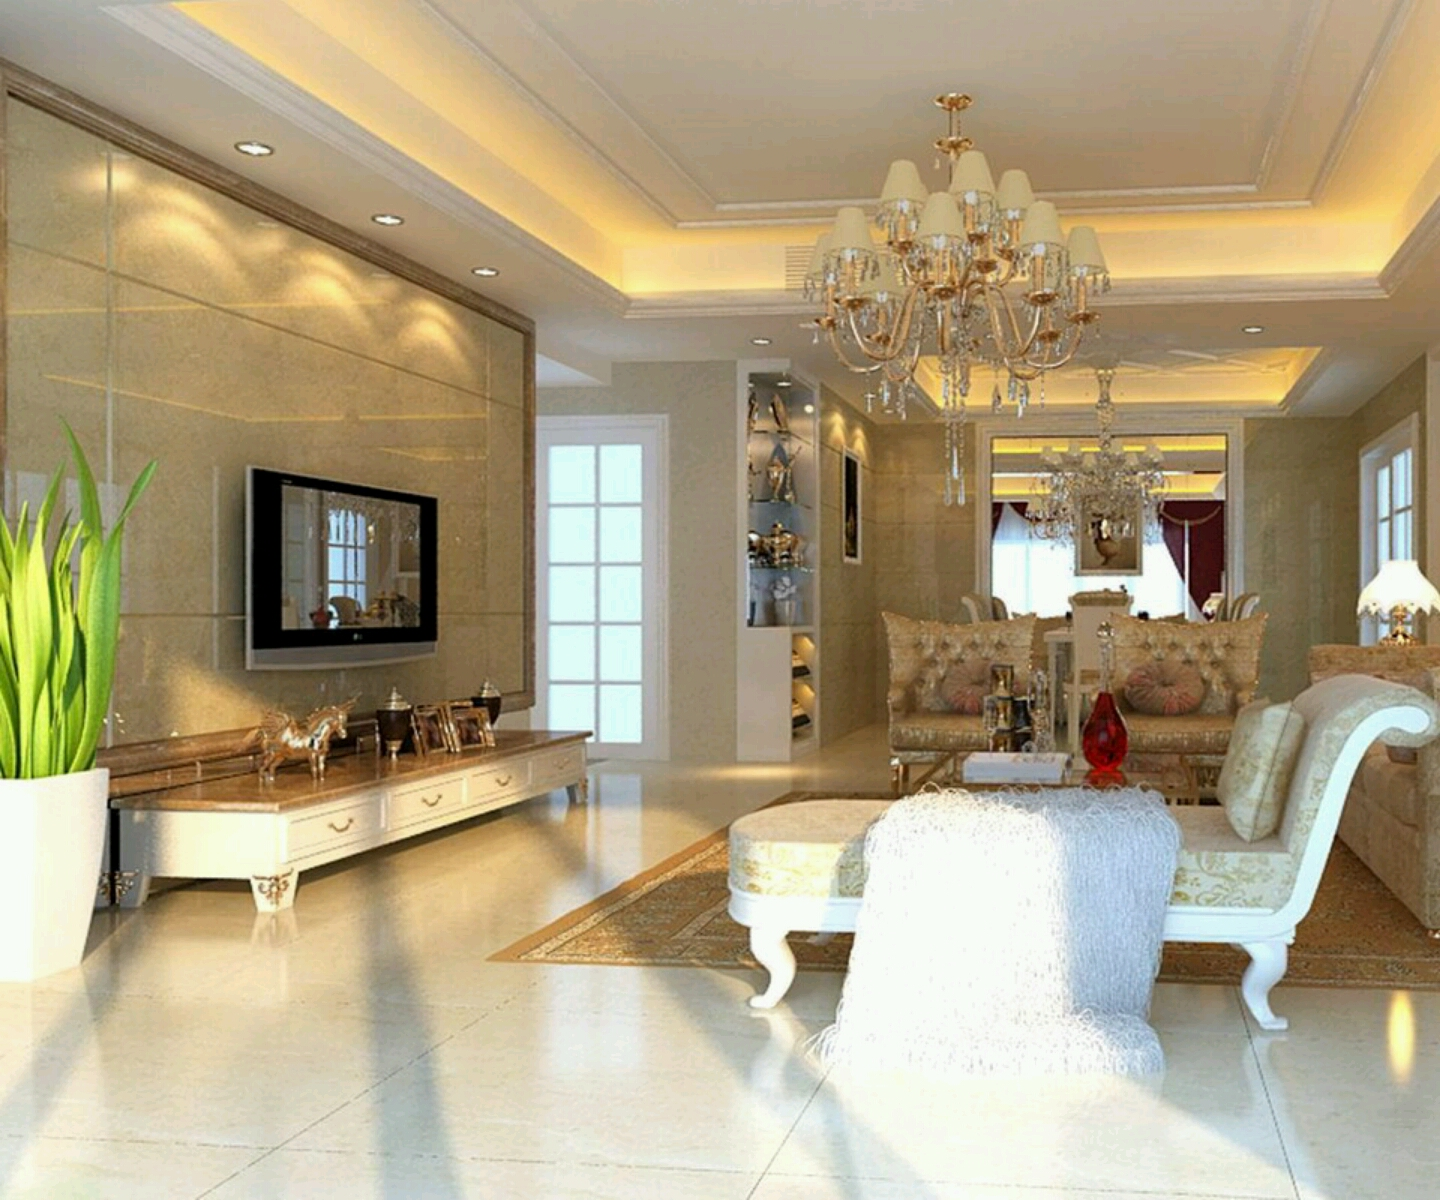 New home designs latest luxury homes interior decoration living room designs ideas - Luxury house interiors ...